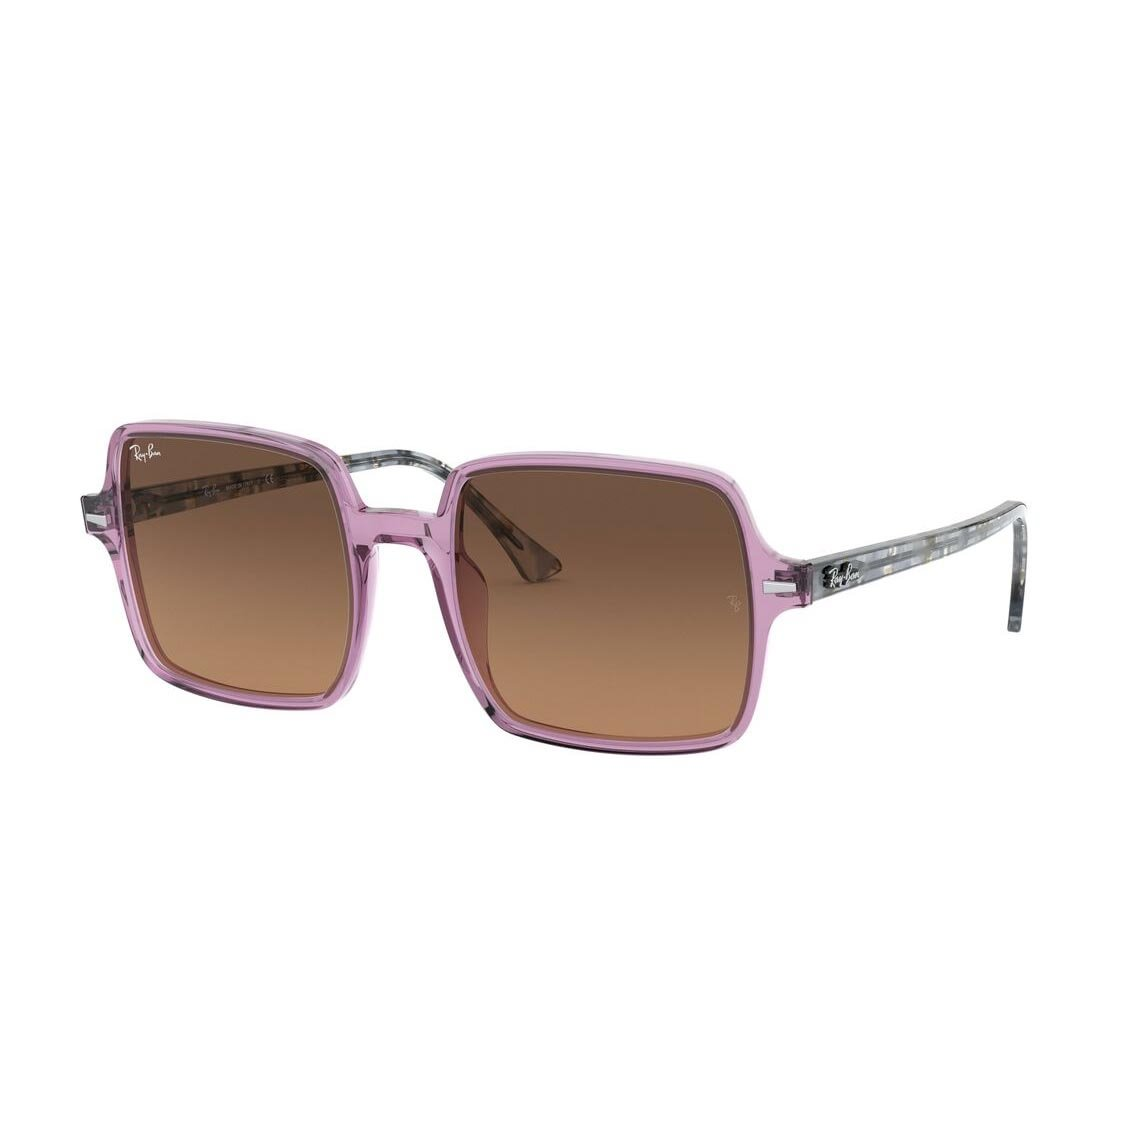 Ray-Ban Square II RB1973 128443 5320